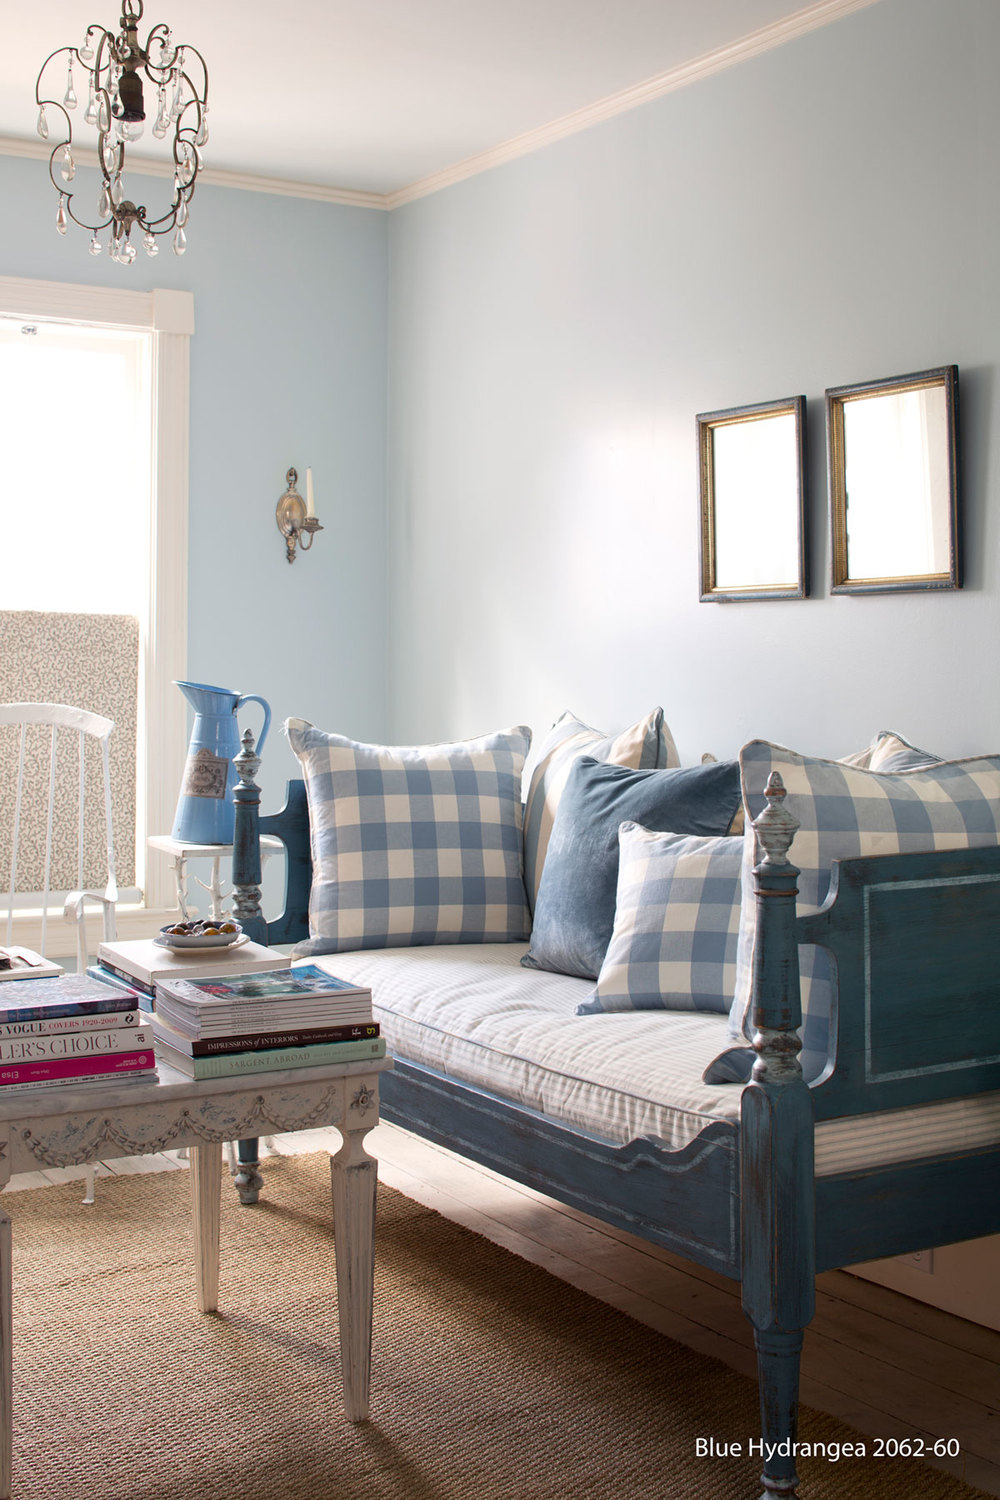 bedroom_bluehydrangea2062_60-2.jpg